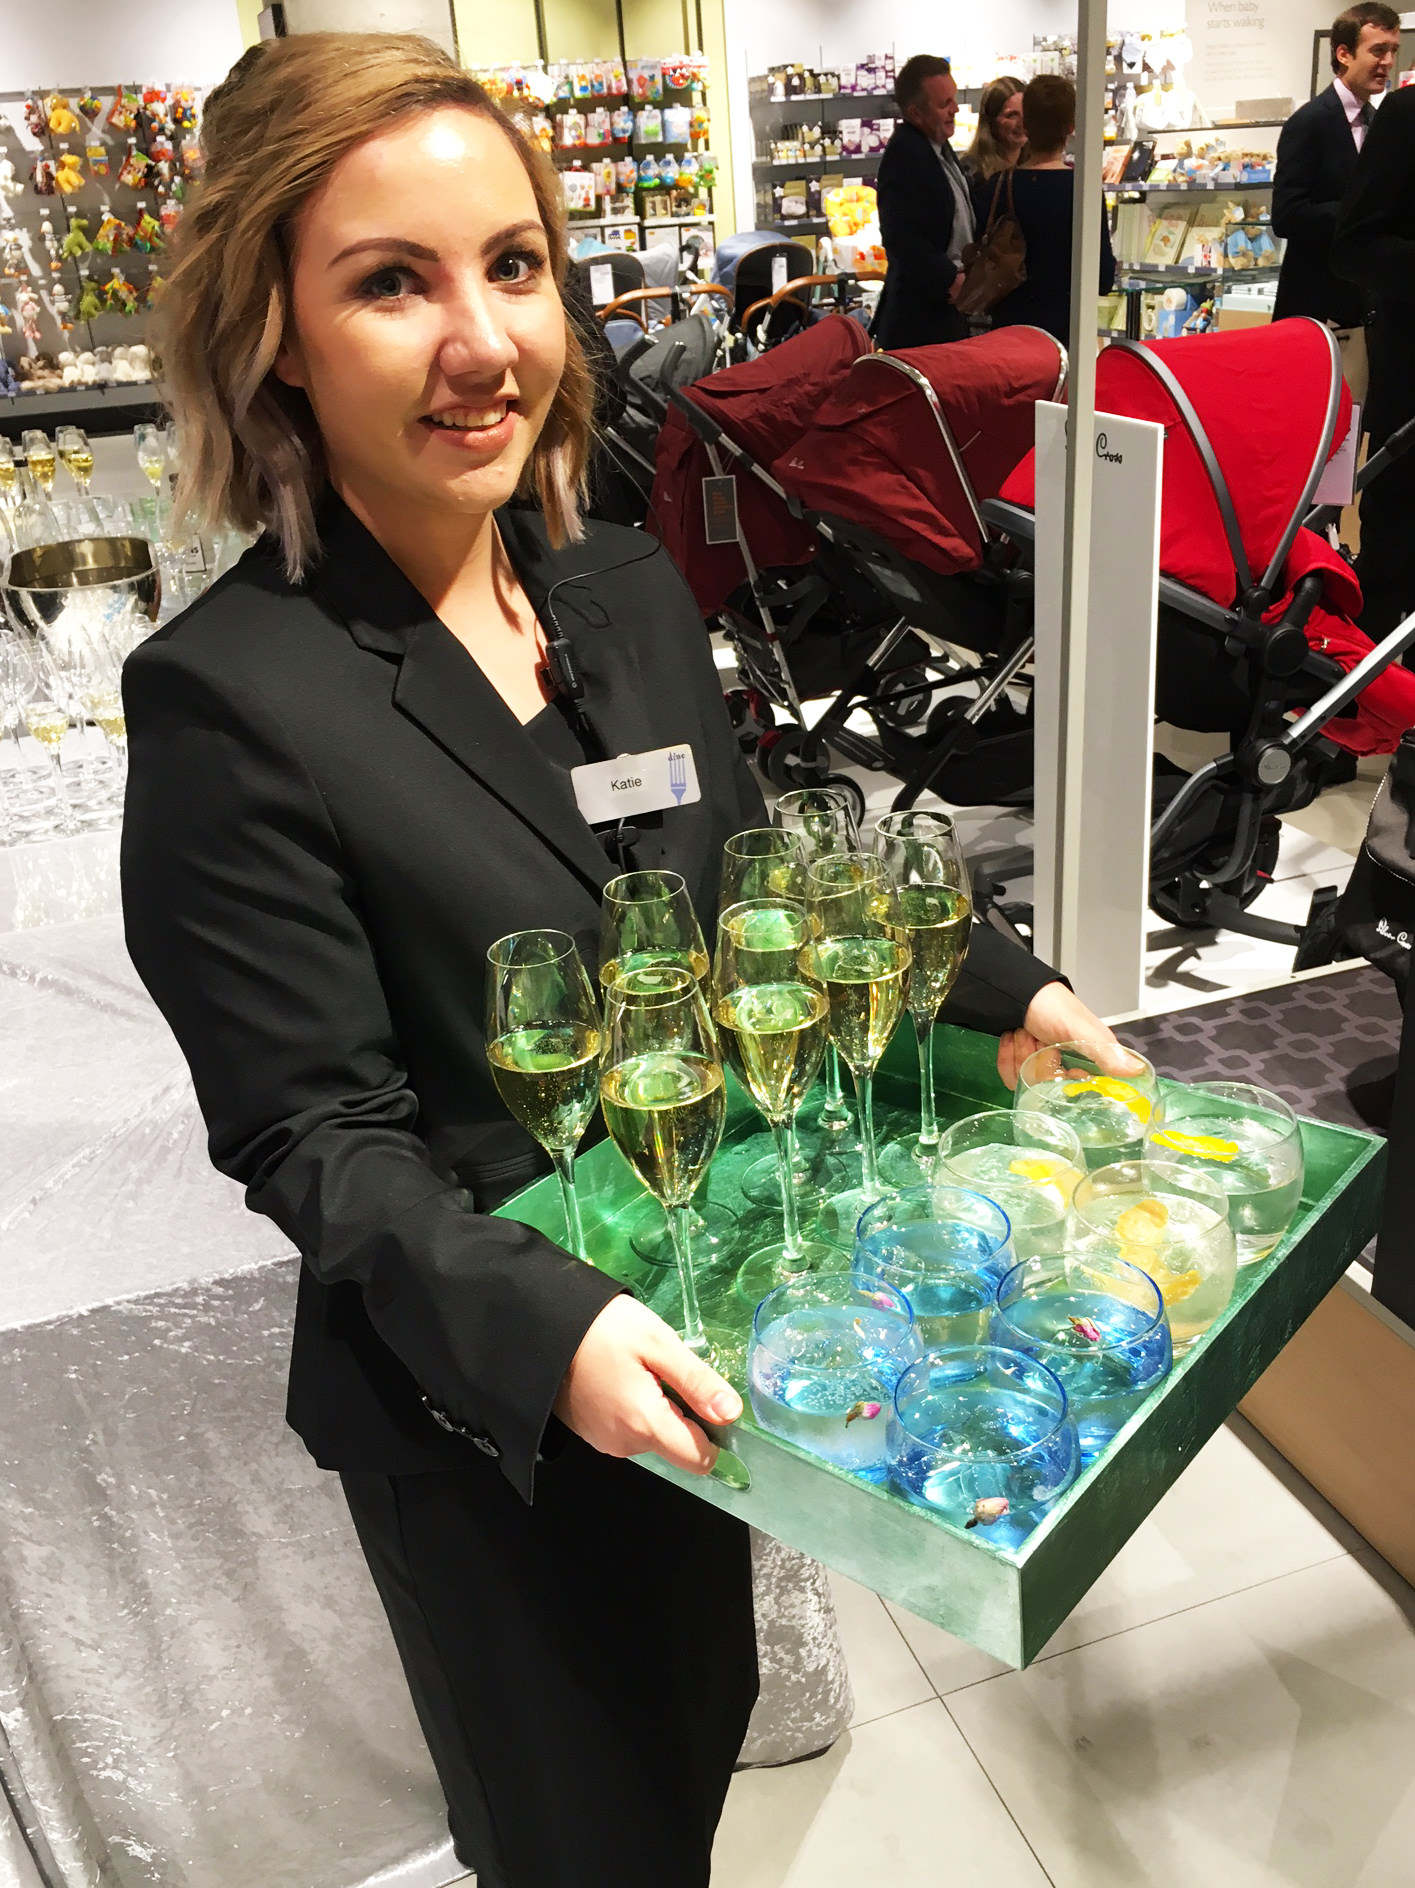 Katie serving drinks in the John Lewis store, Leeds